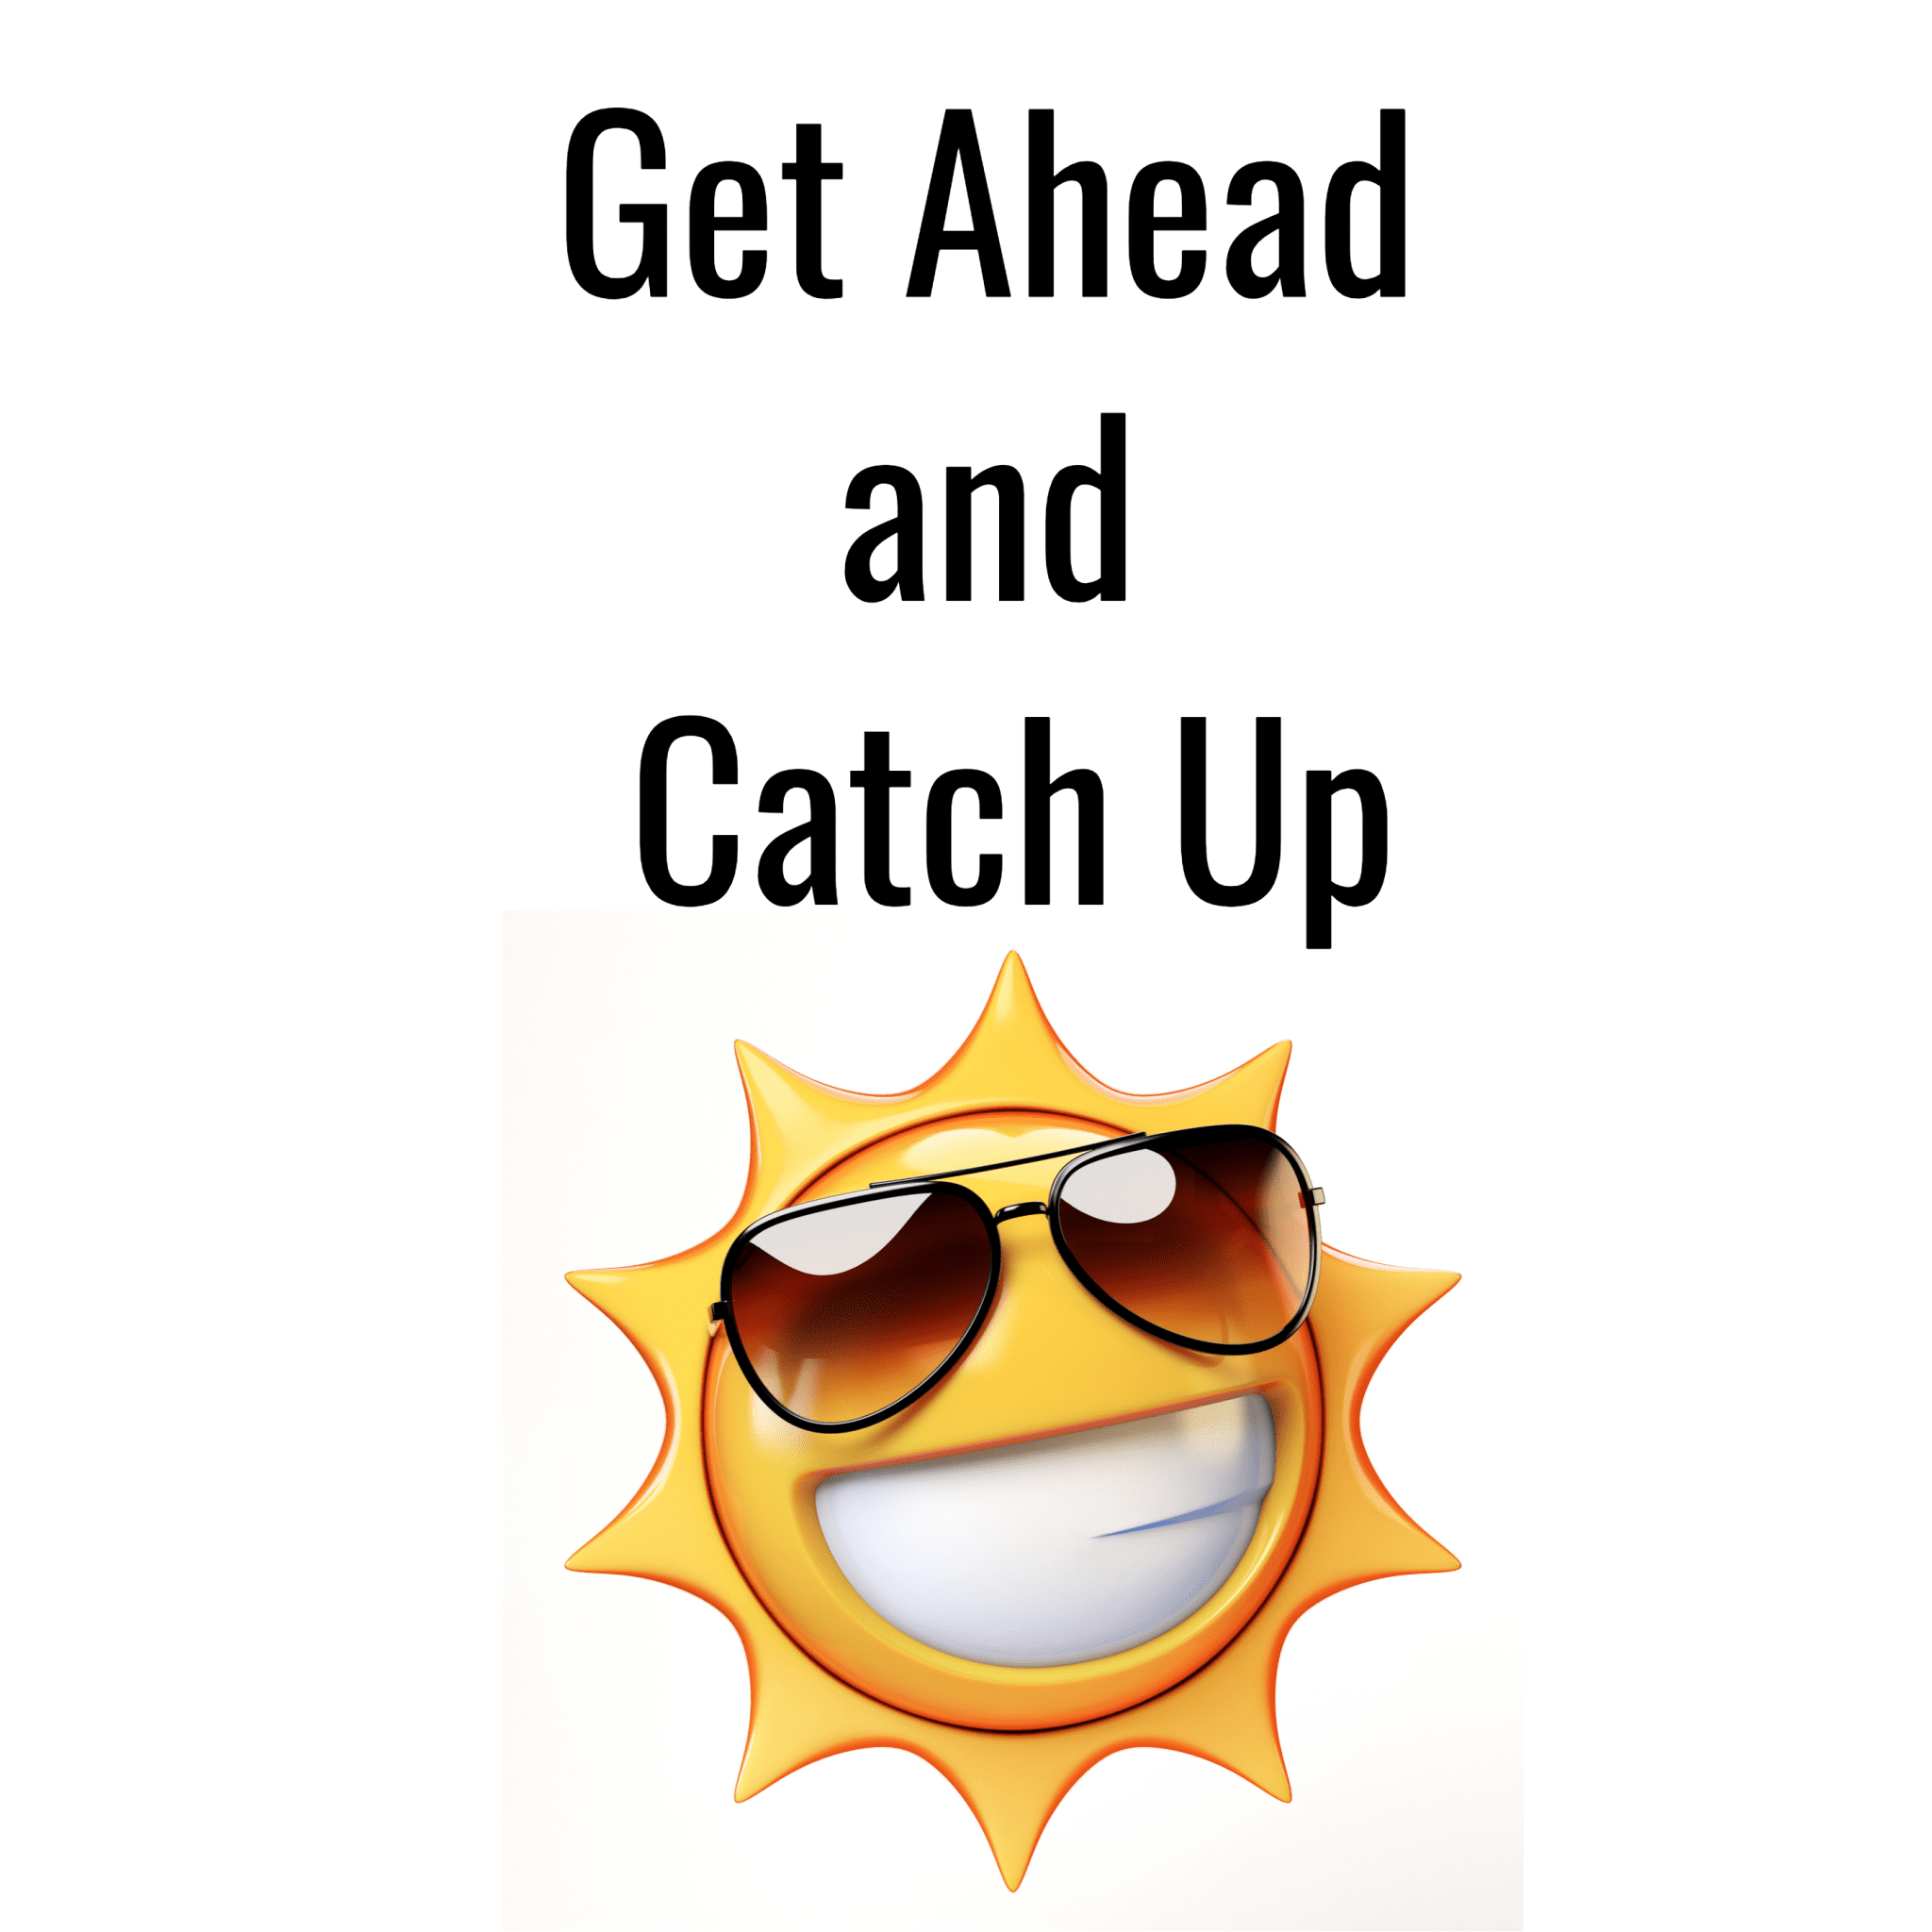 Get Ahead and Catch Up 8-12 éveseknek